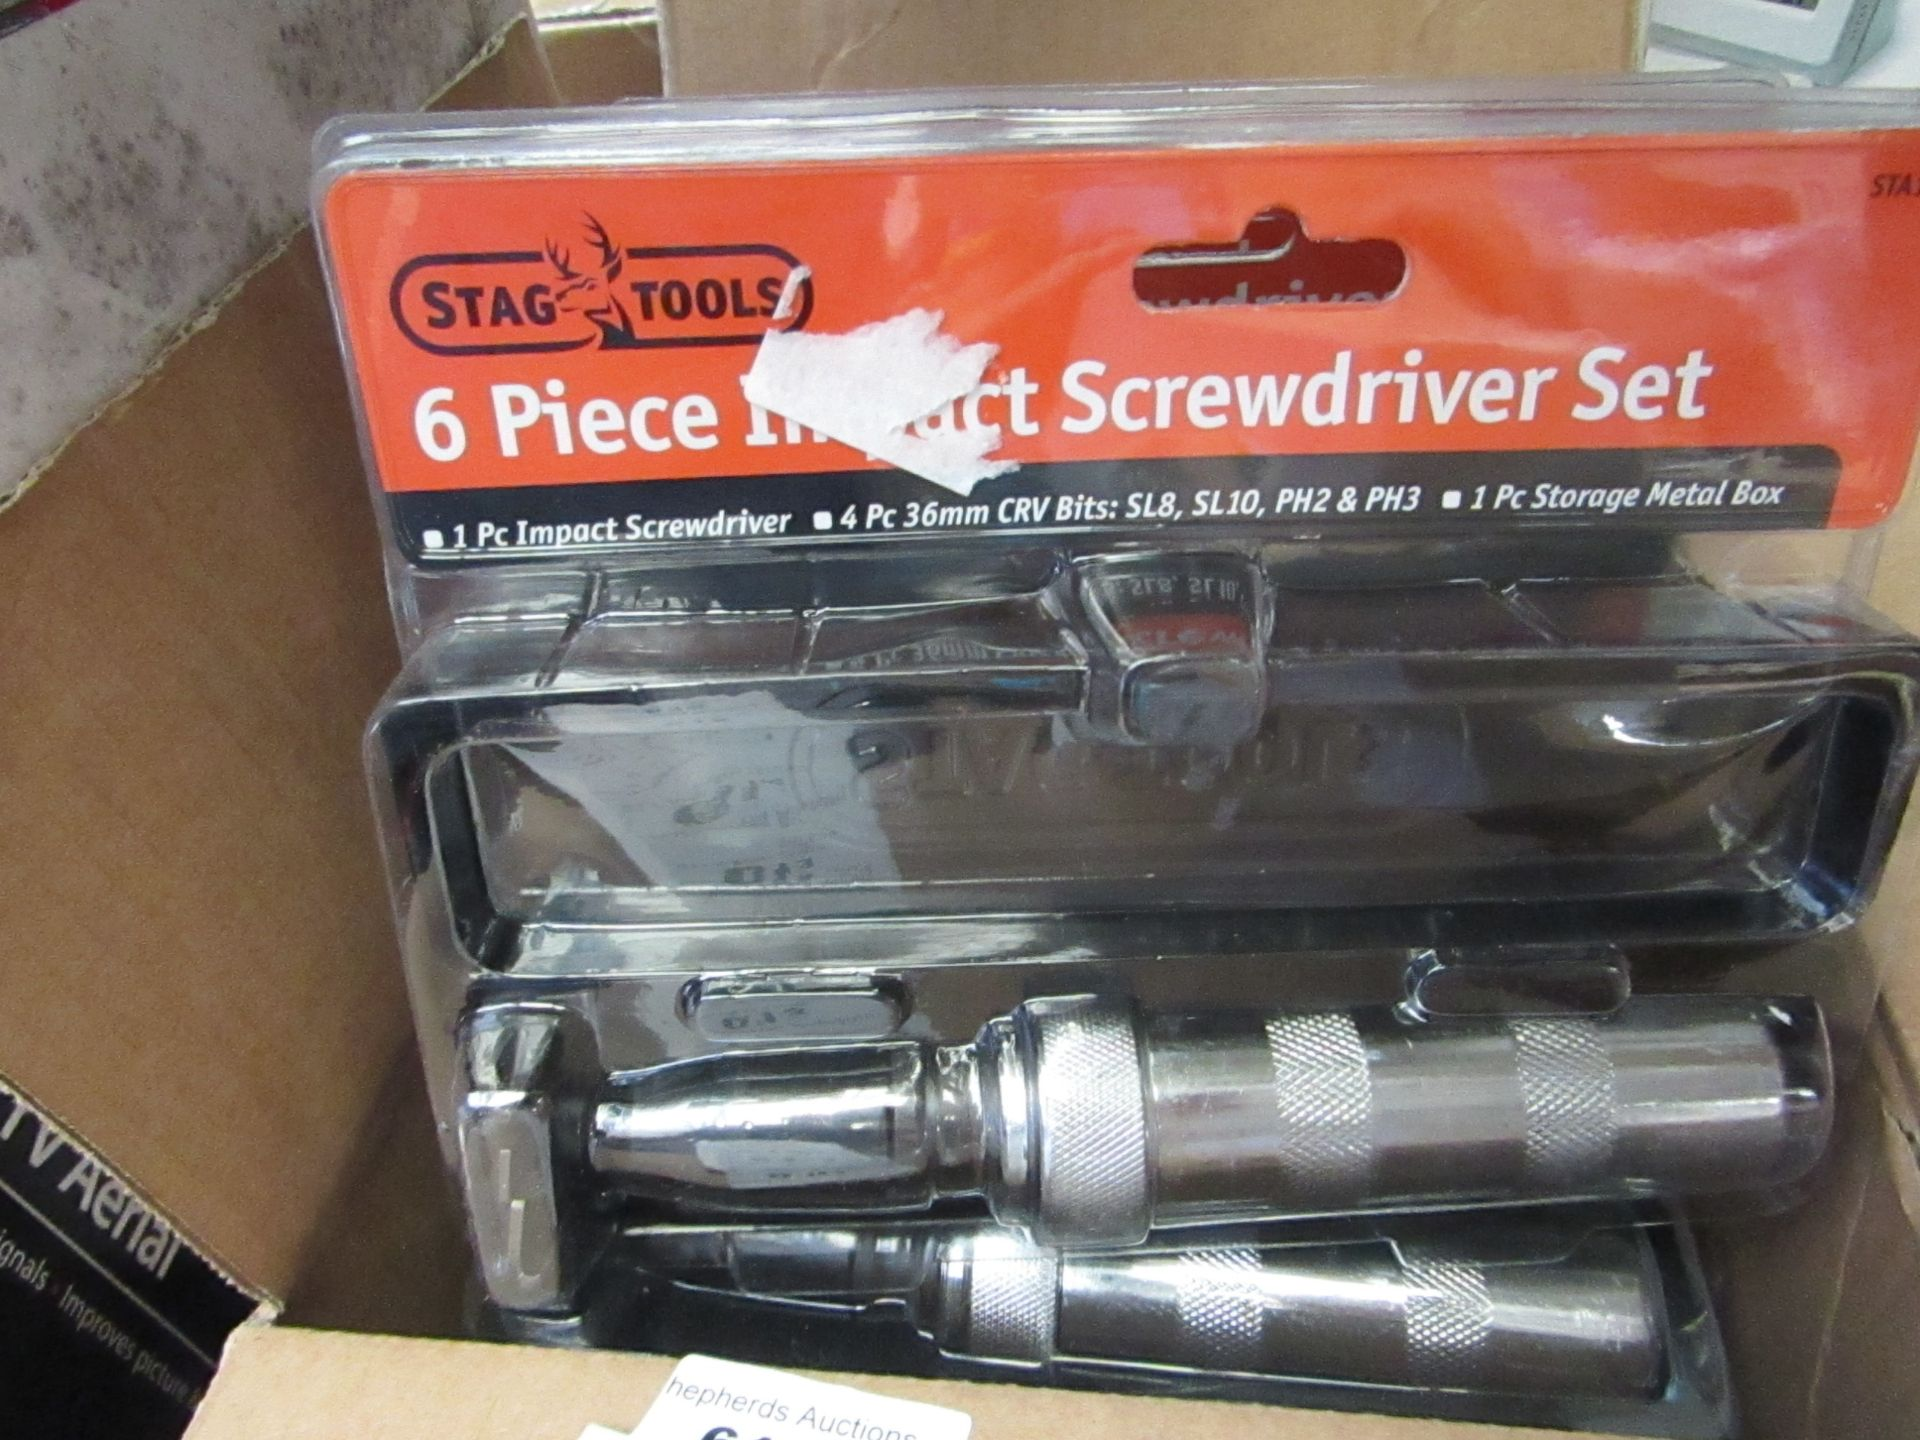 Lot 613 - Stag tools 6 Piece Impact Screwdriver Set. New & Packaged